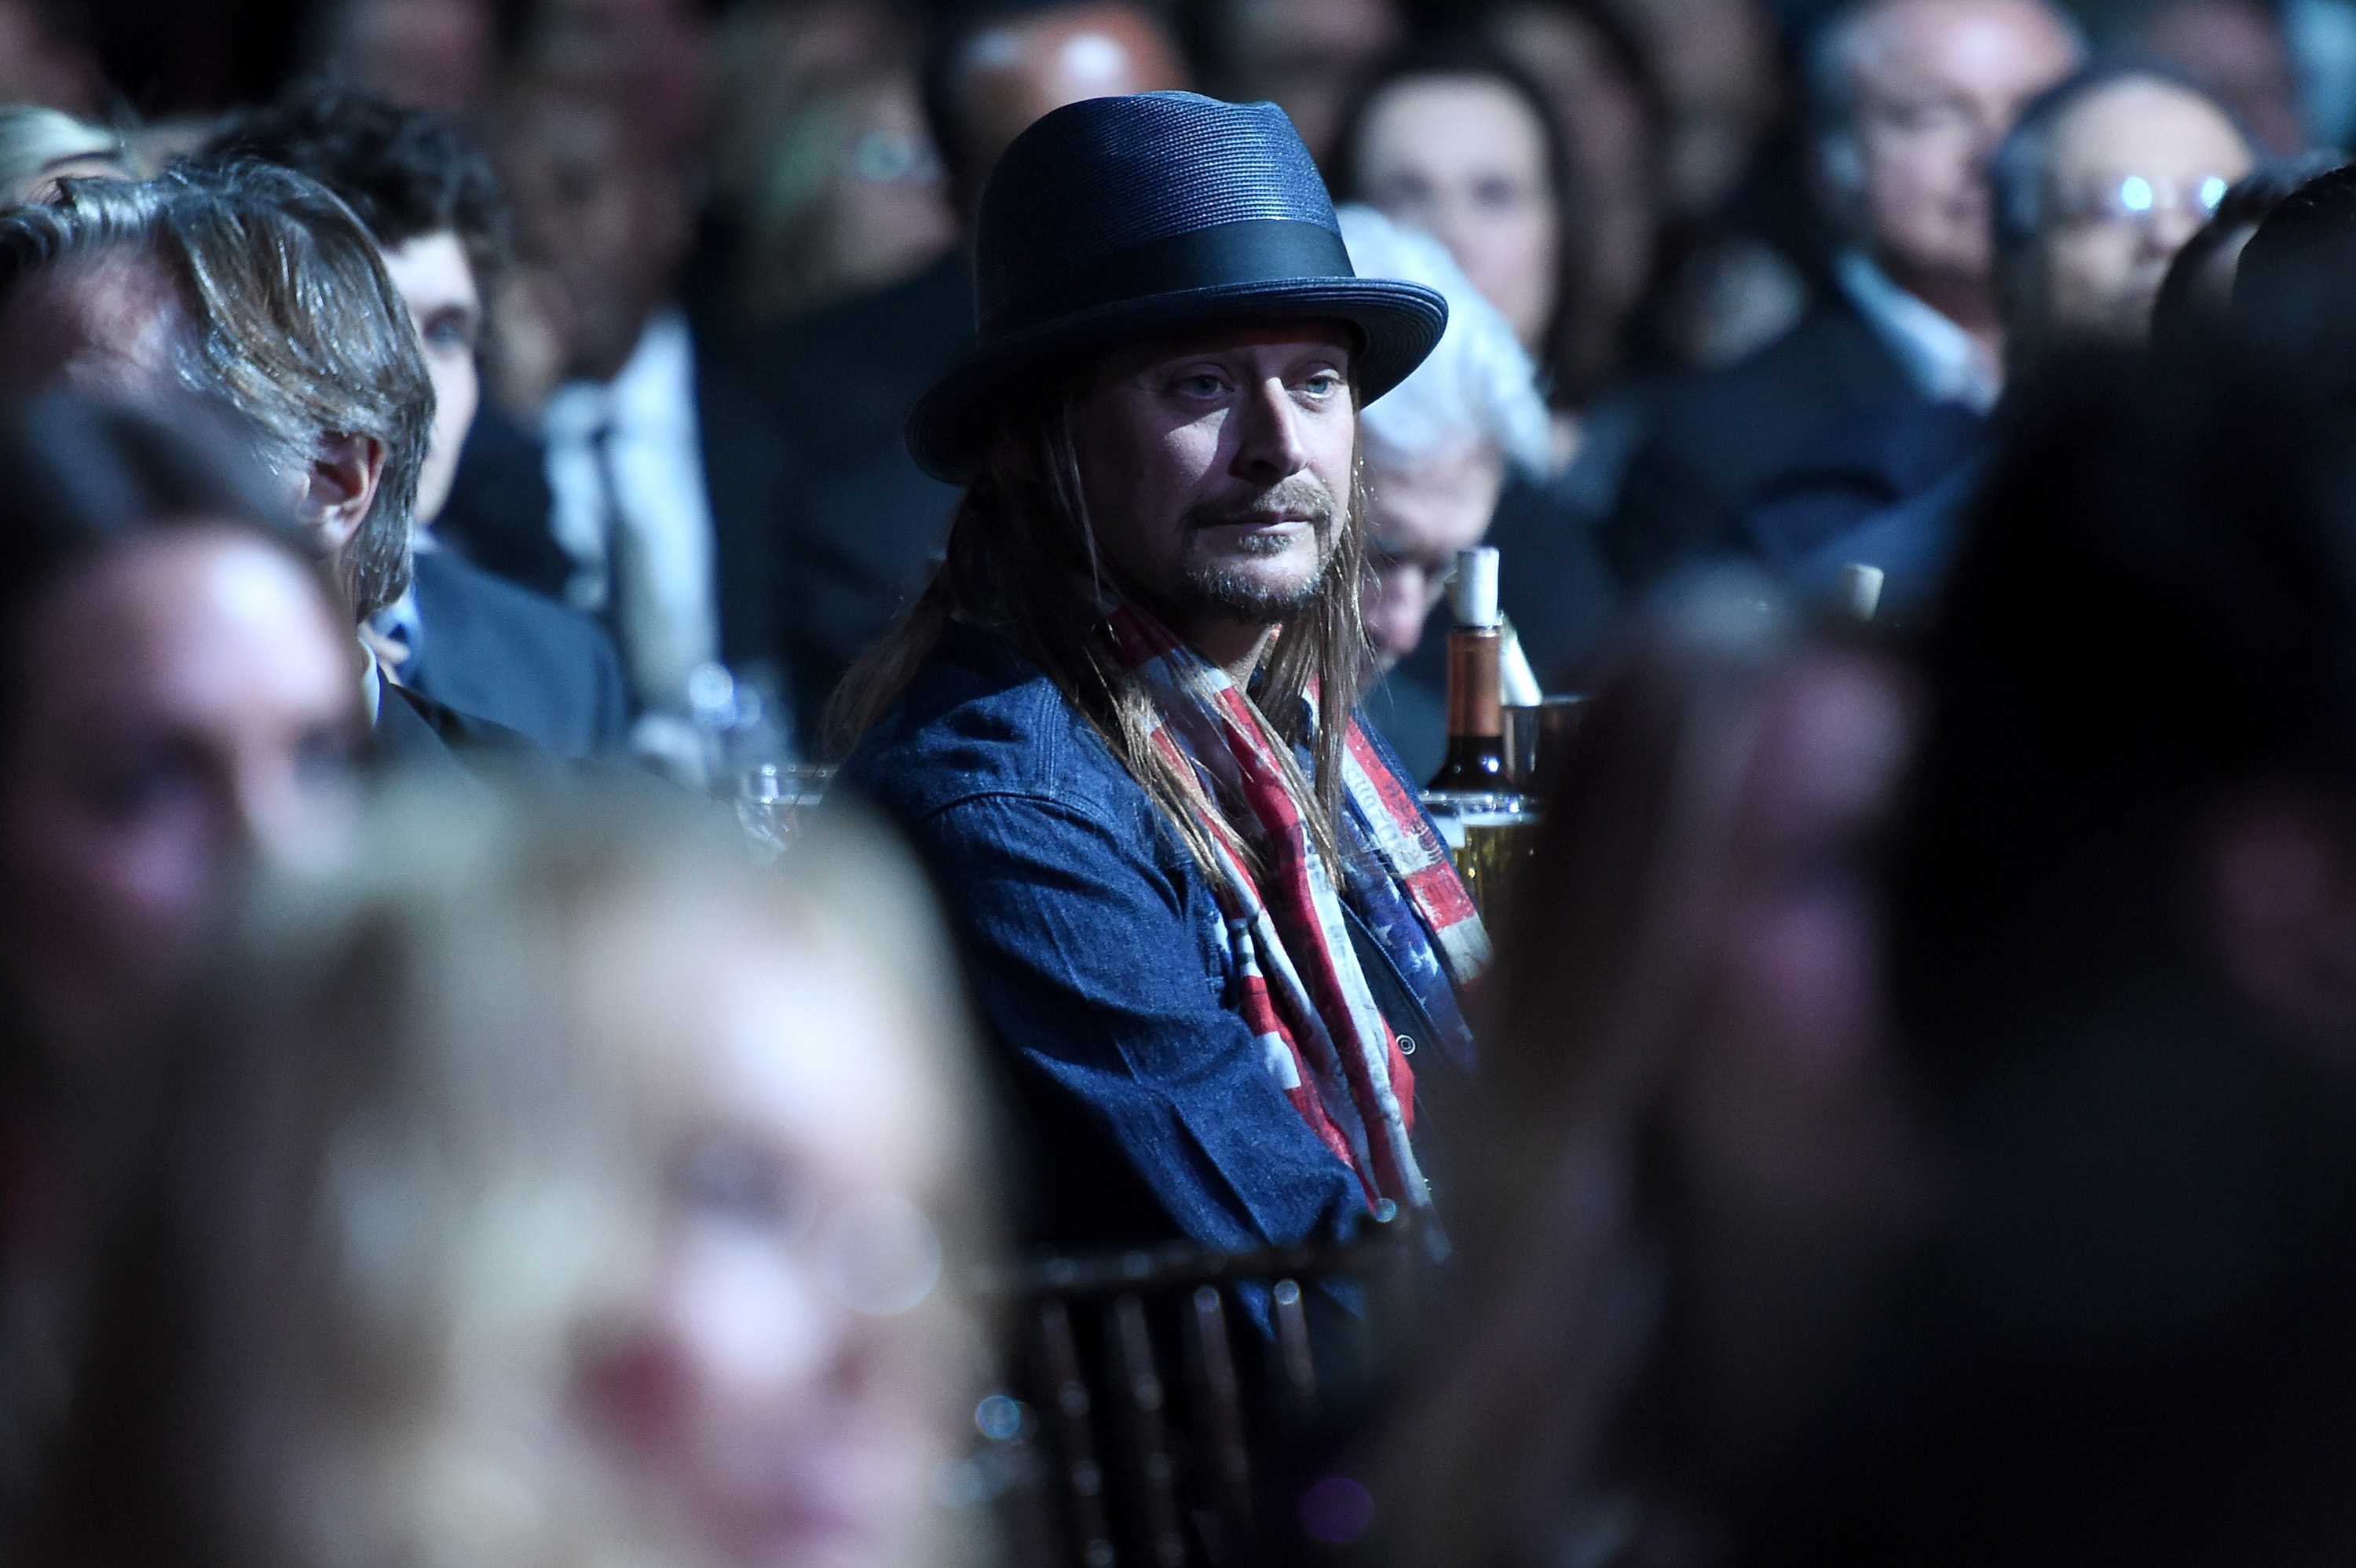 Kid Rock attends the Rock And Roll Hall Of Fame Induction Ceremony in New York City, on April 8, 2016.